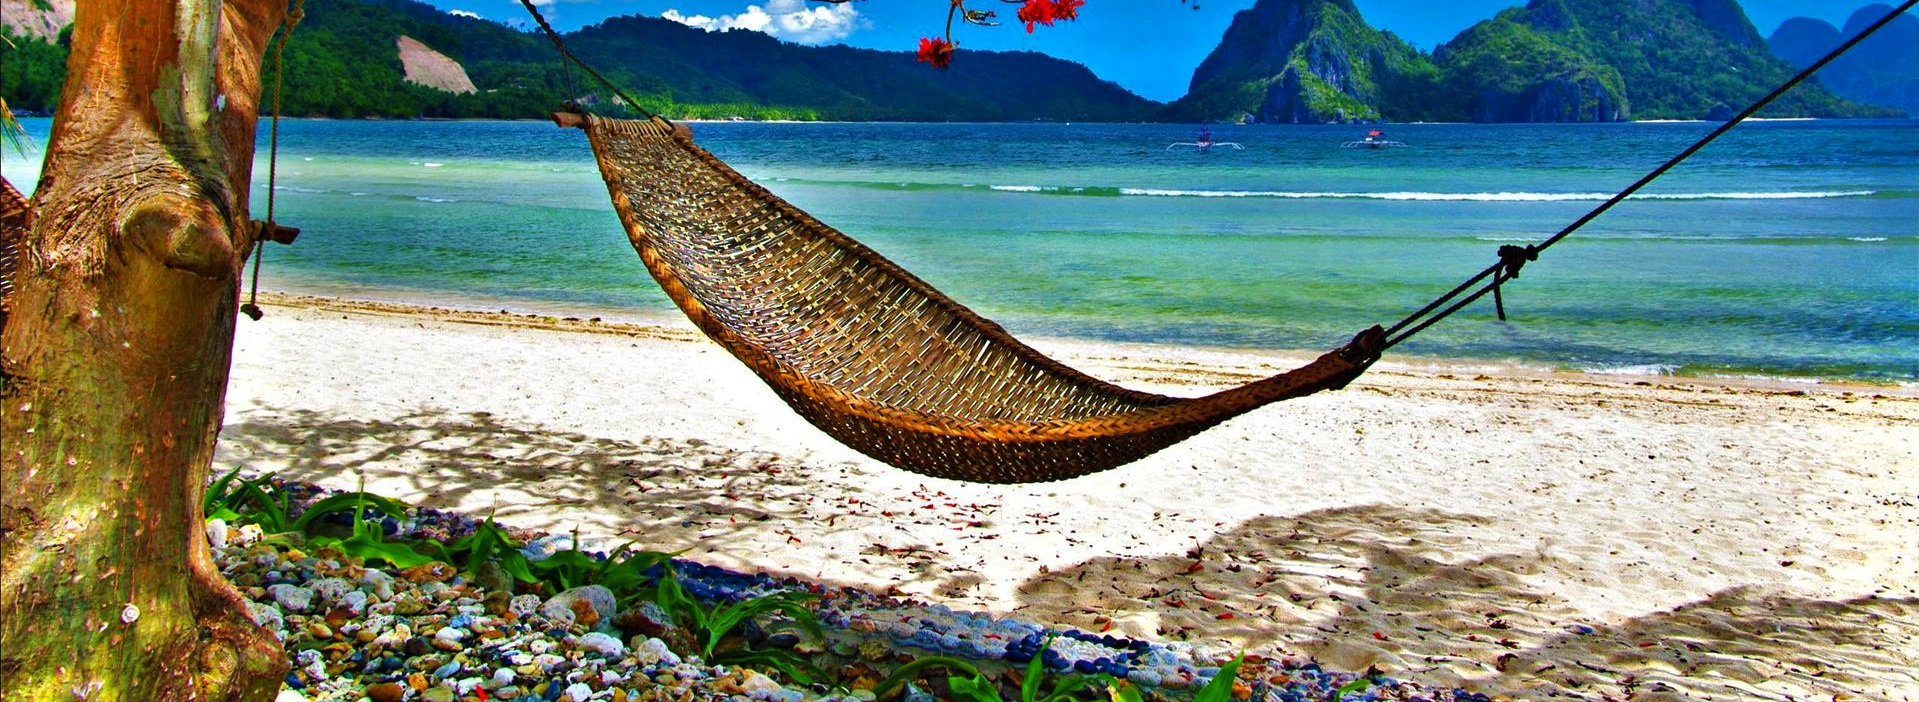 1920x1200-hammock-by-the-beach